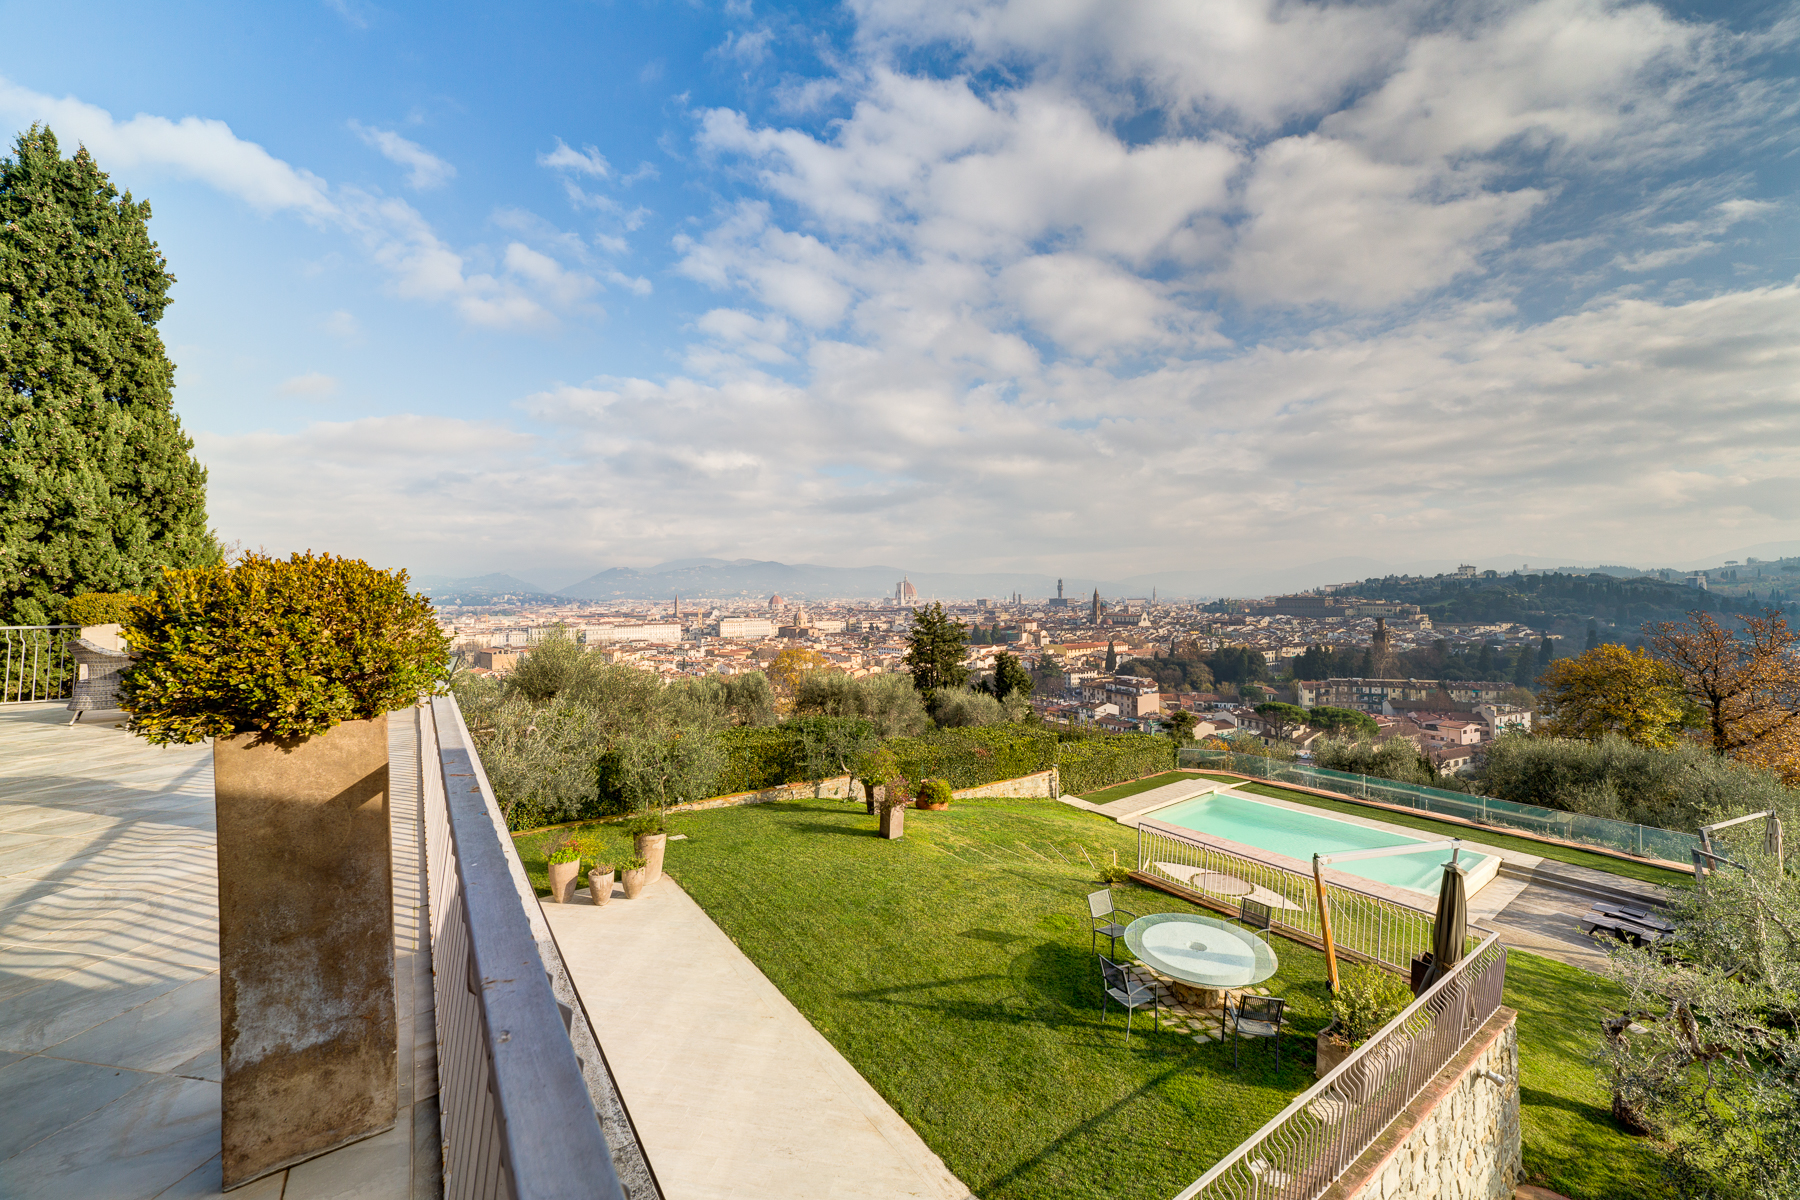 Single Family Home for Sale at A truly unique villa with views over Florence Bellosguardo Firenze, 50122 Italy